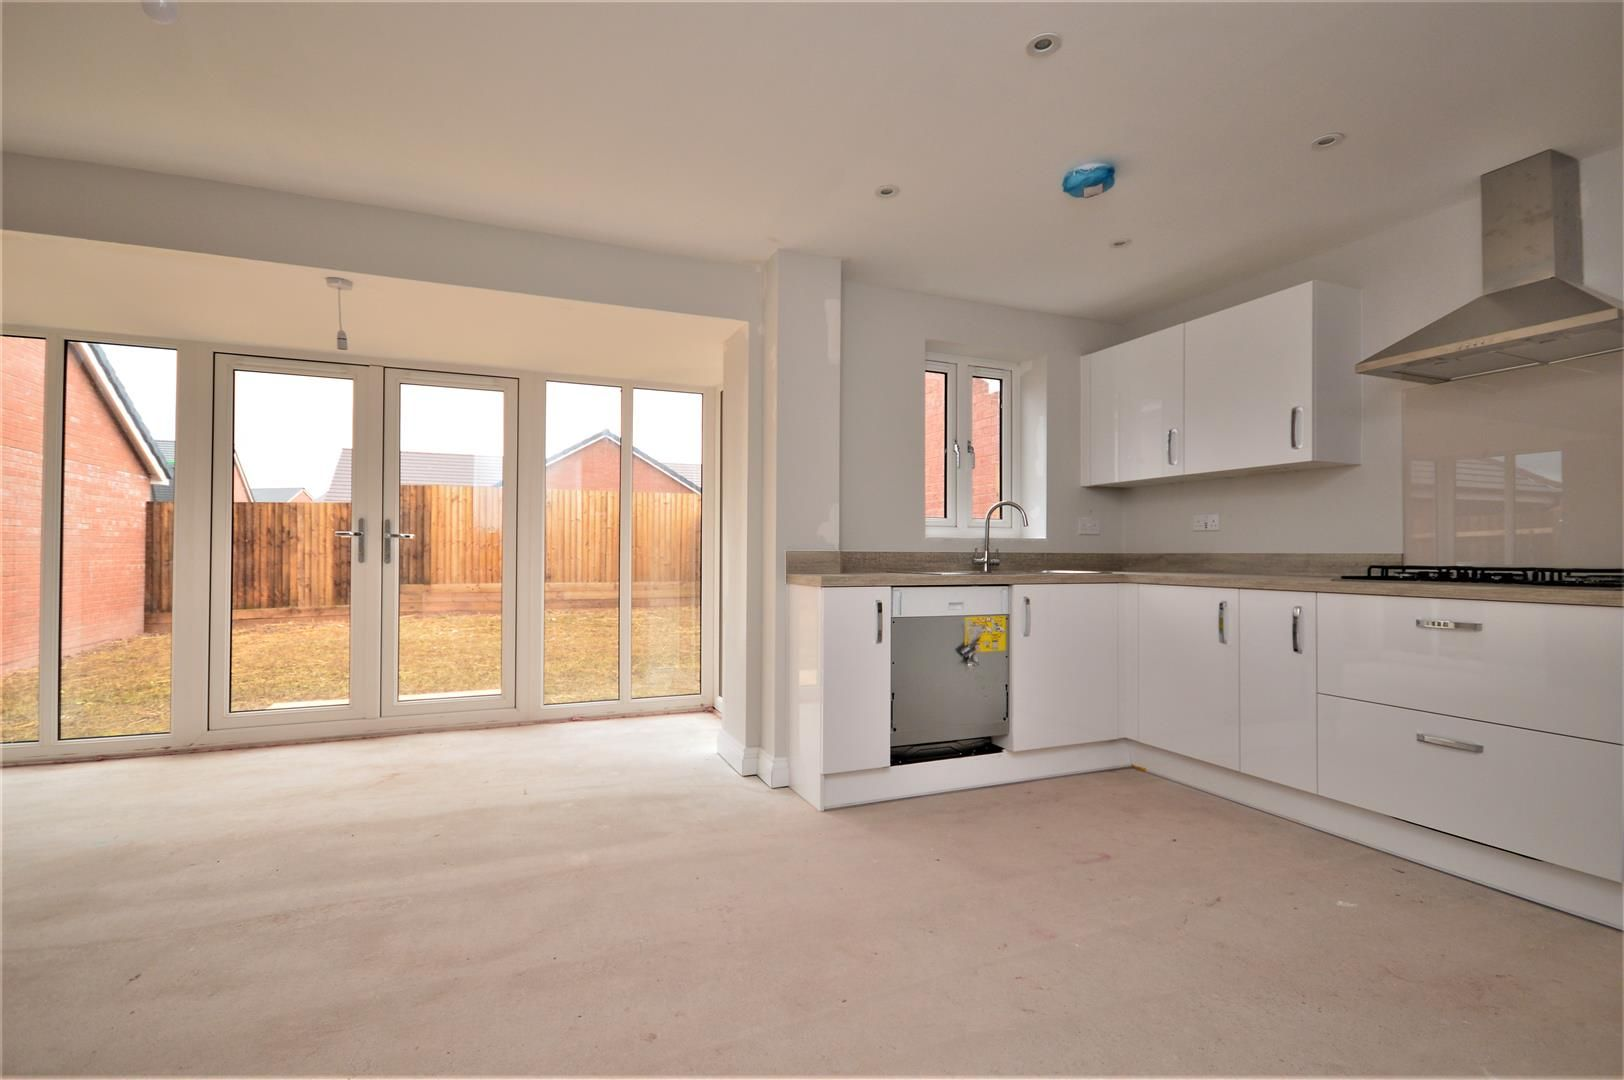 4 bed detached for sale in Kingstone 14